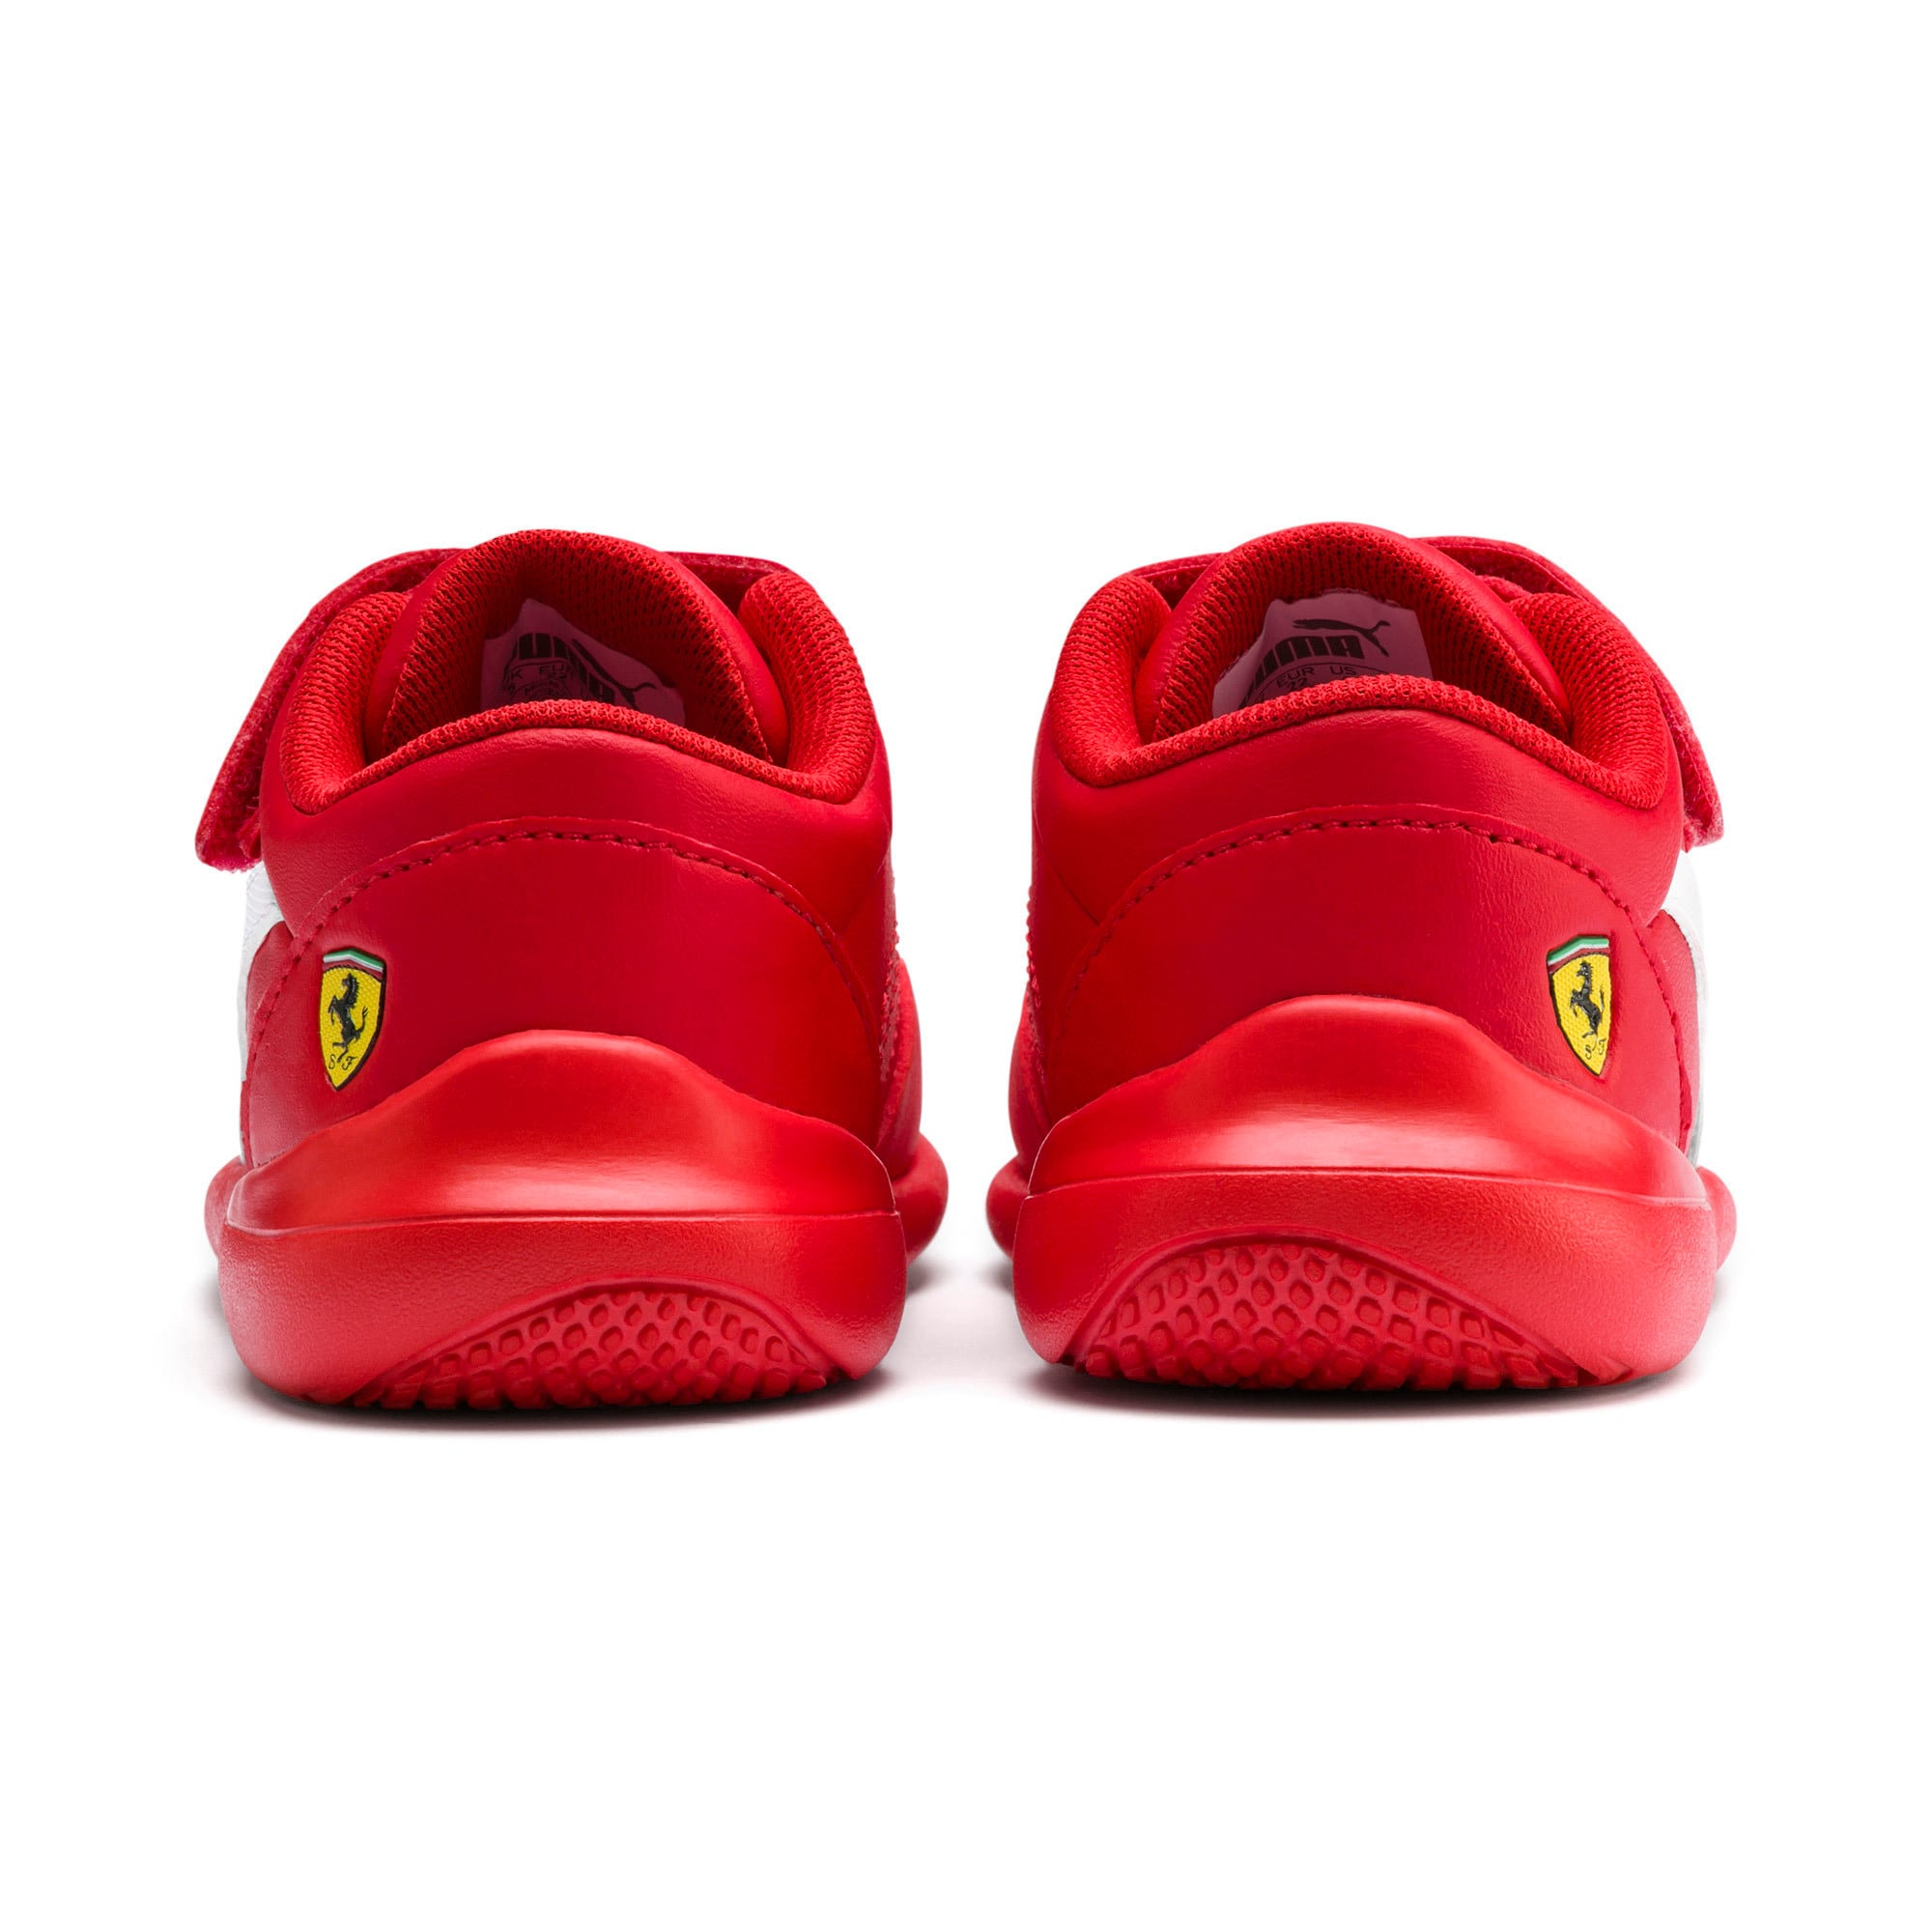 Thumbnail 3 of Scuderia Ferrari Kart Cat III Toddler Shoes, Rosso Corsa-Wht-Rosso Corsa, medium